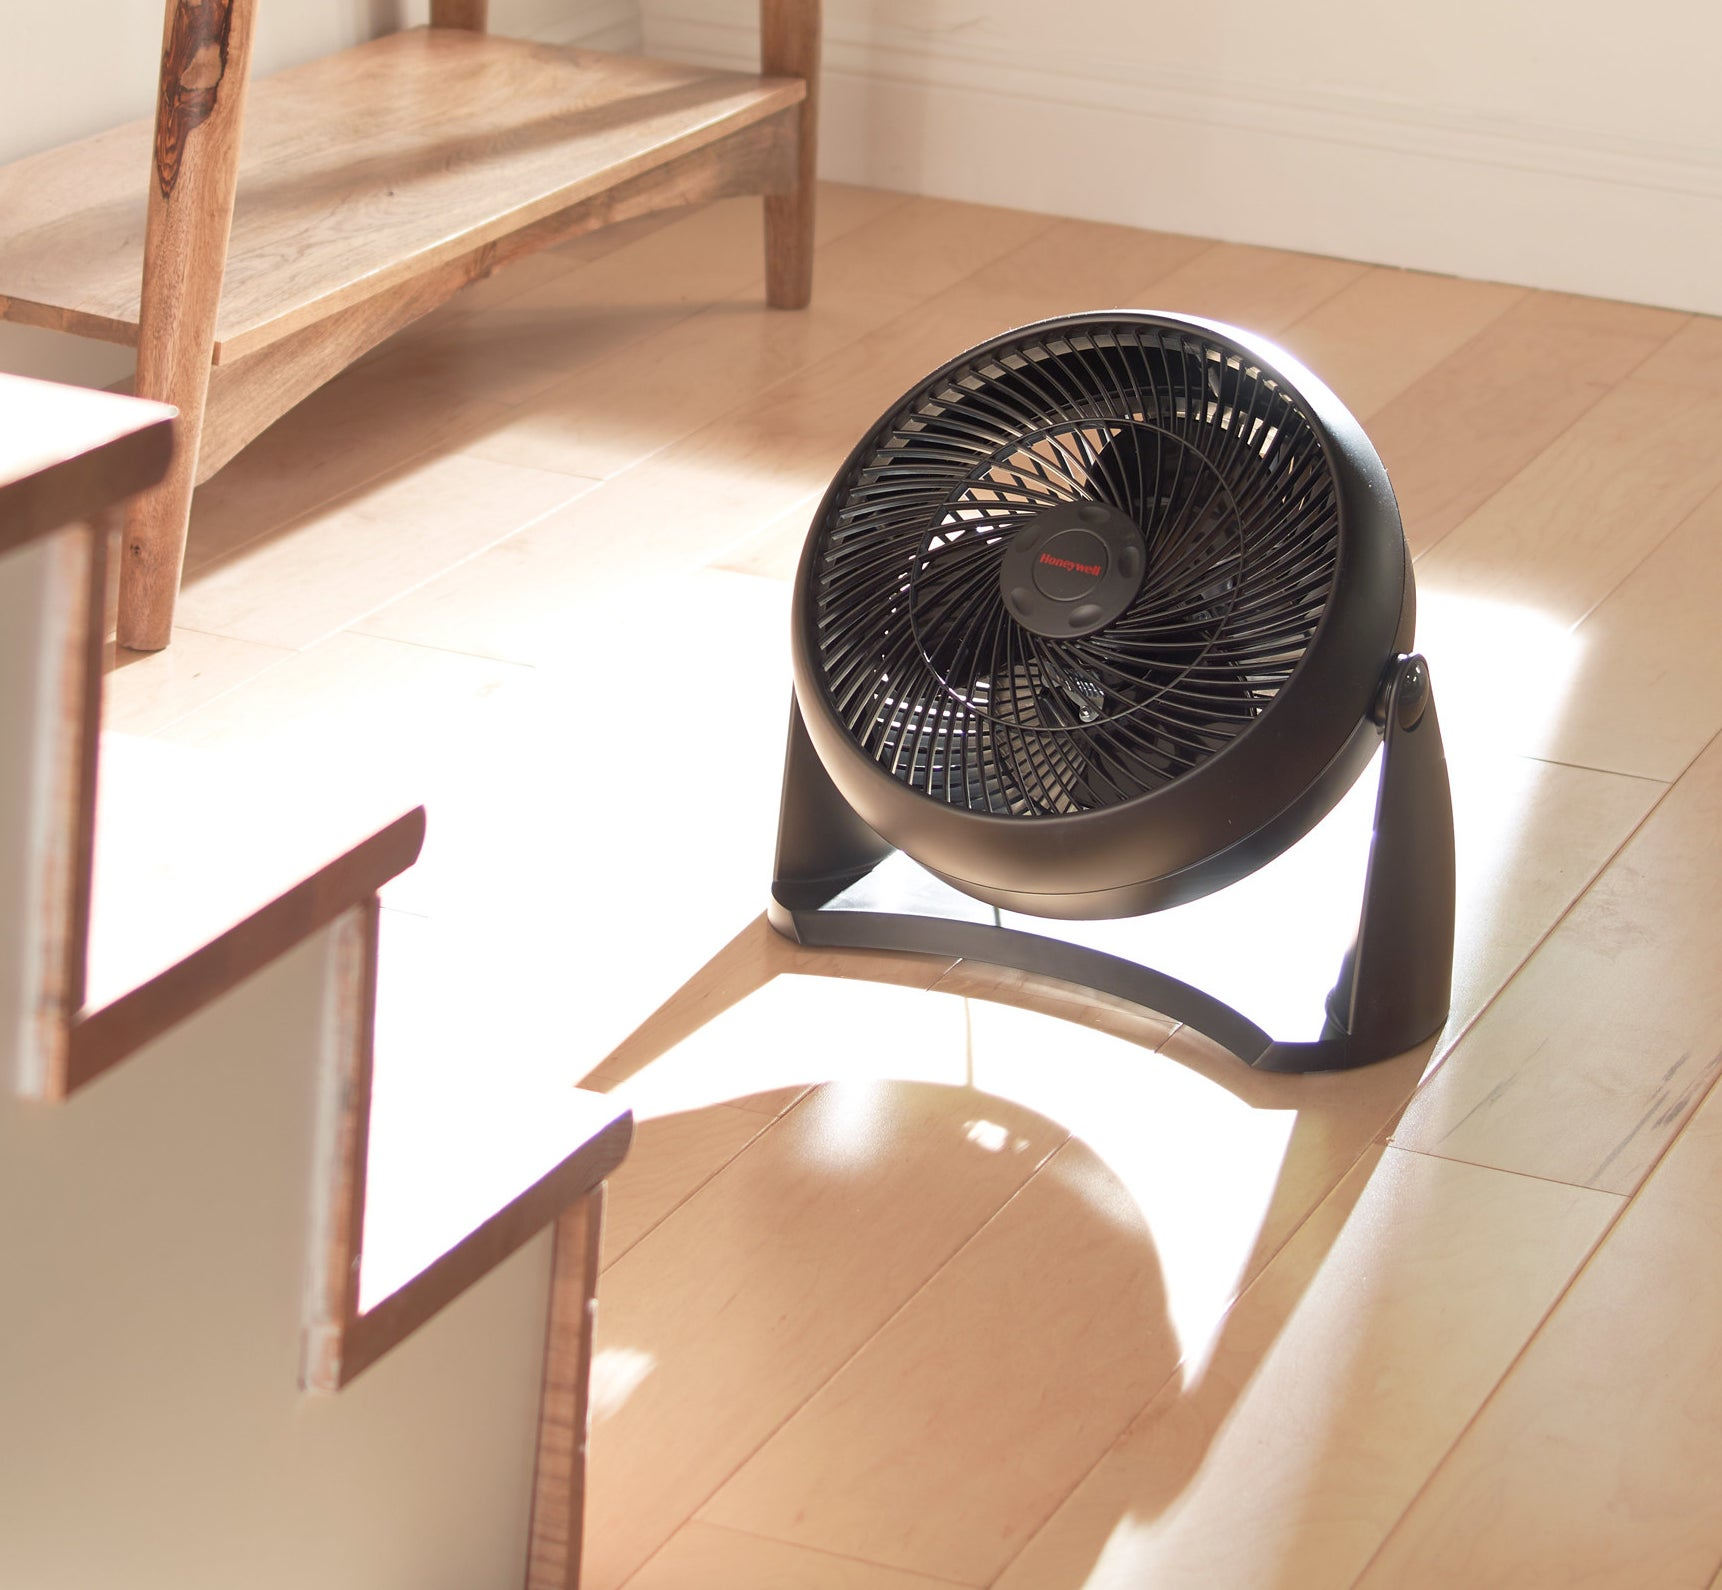 a black fan sitting on the ground of a foyer